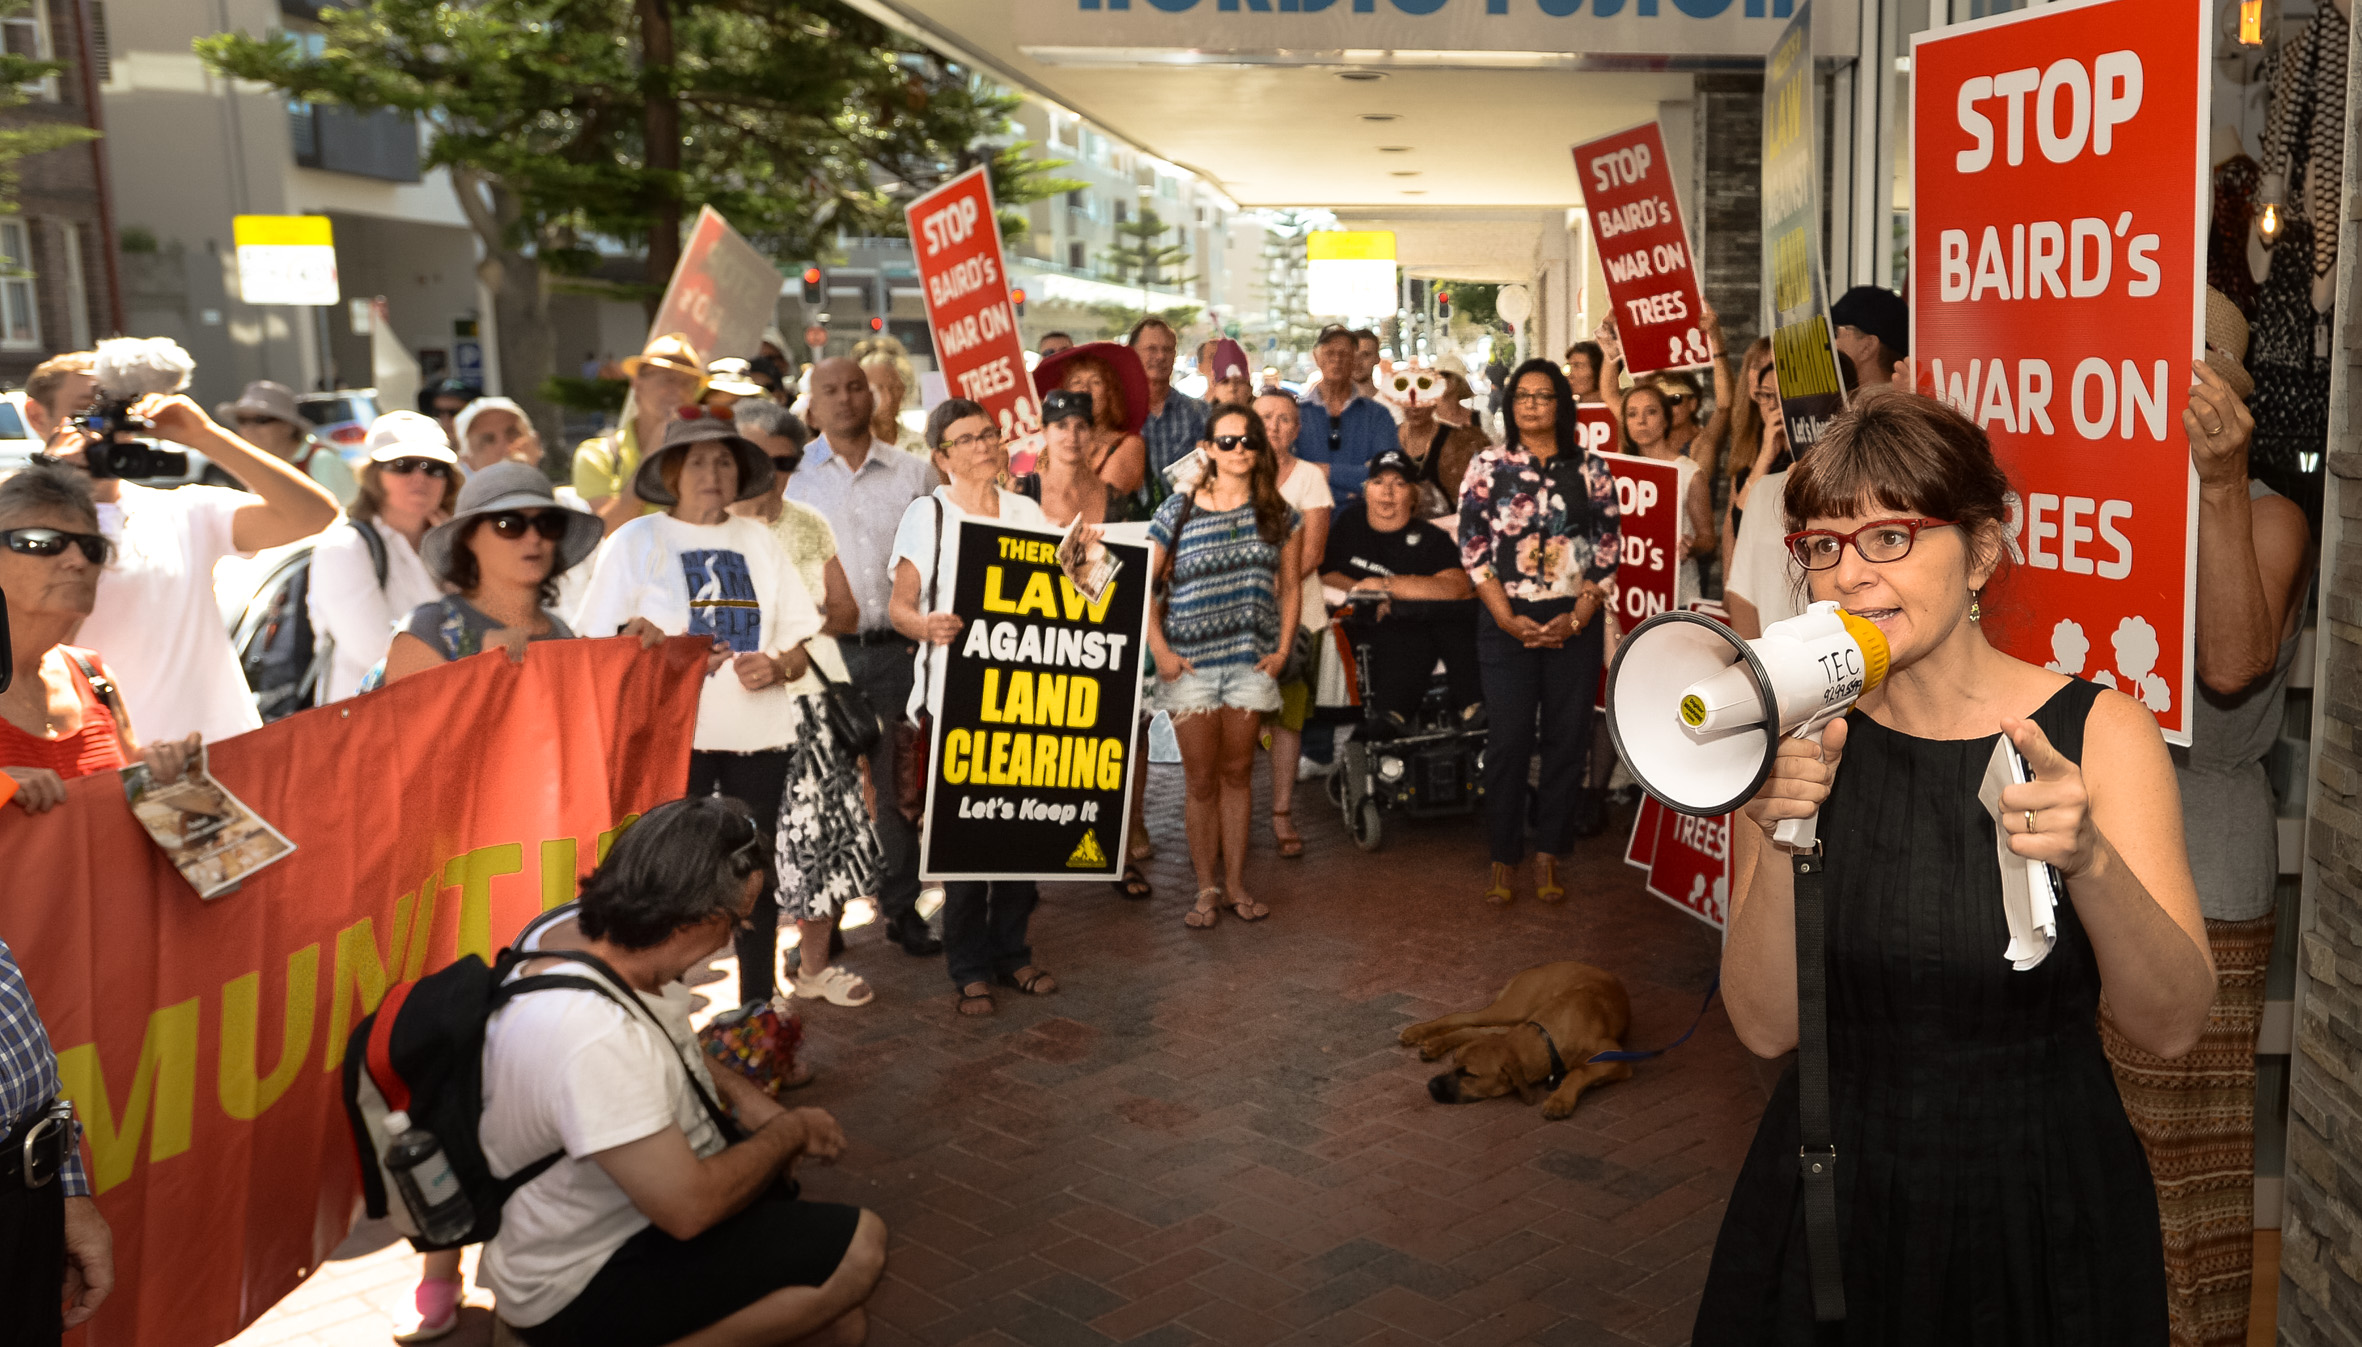 Mike_Baird_protest_(3).jpg